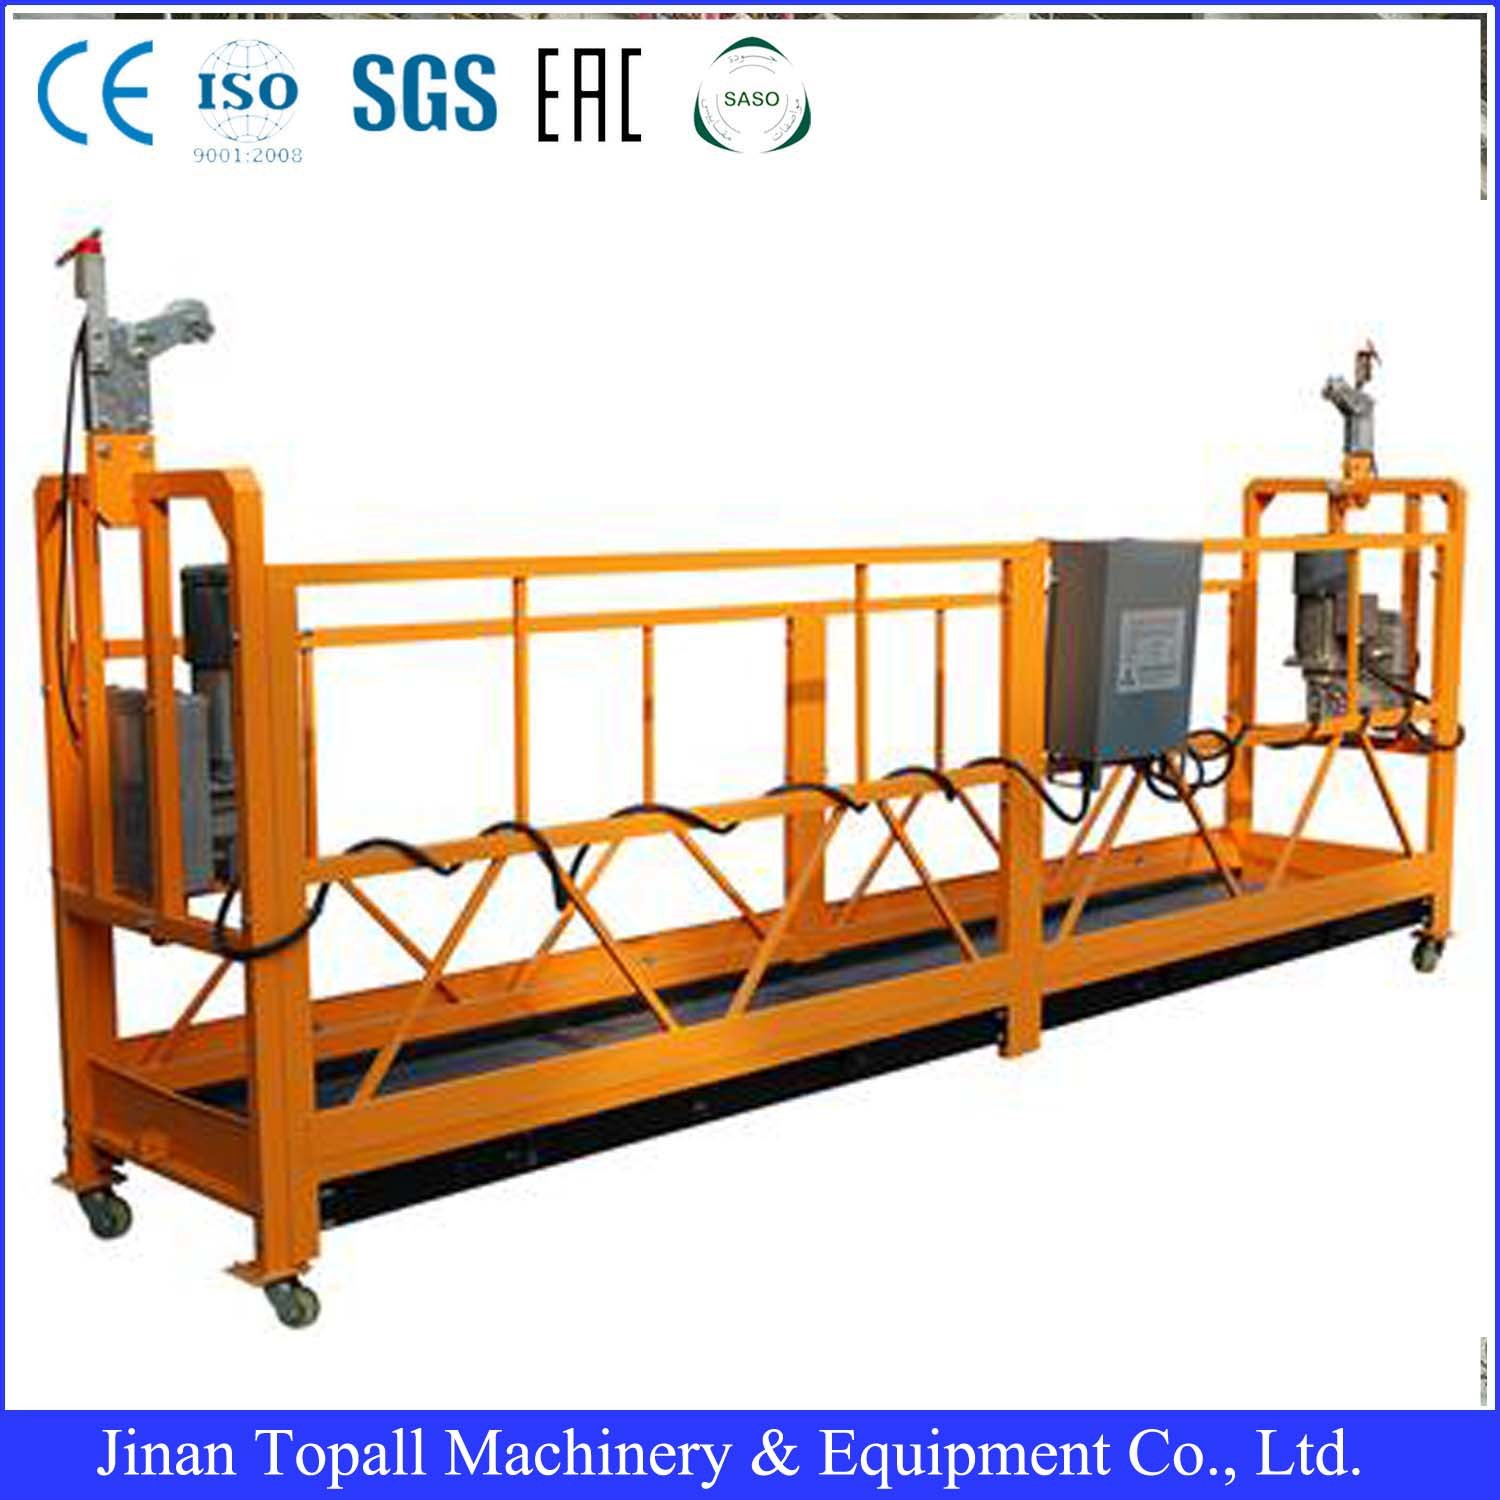 Mobile Work Platform and Zinc Plated Surface Handling Work Platform